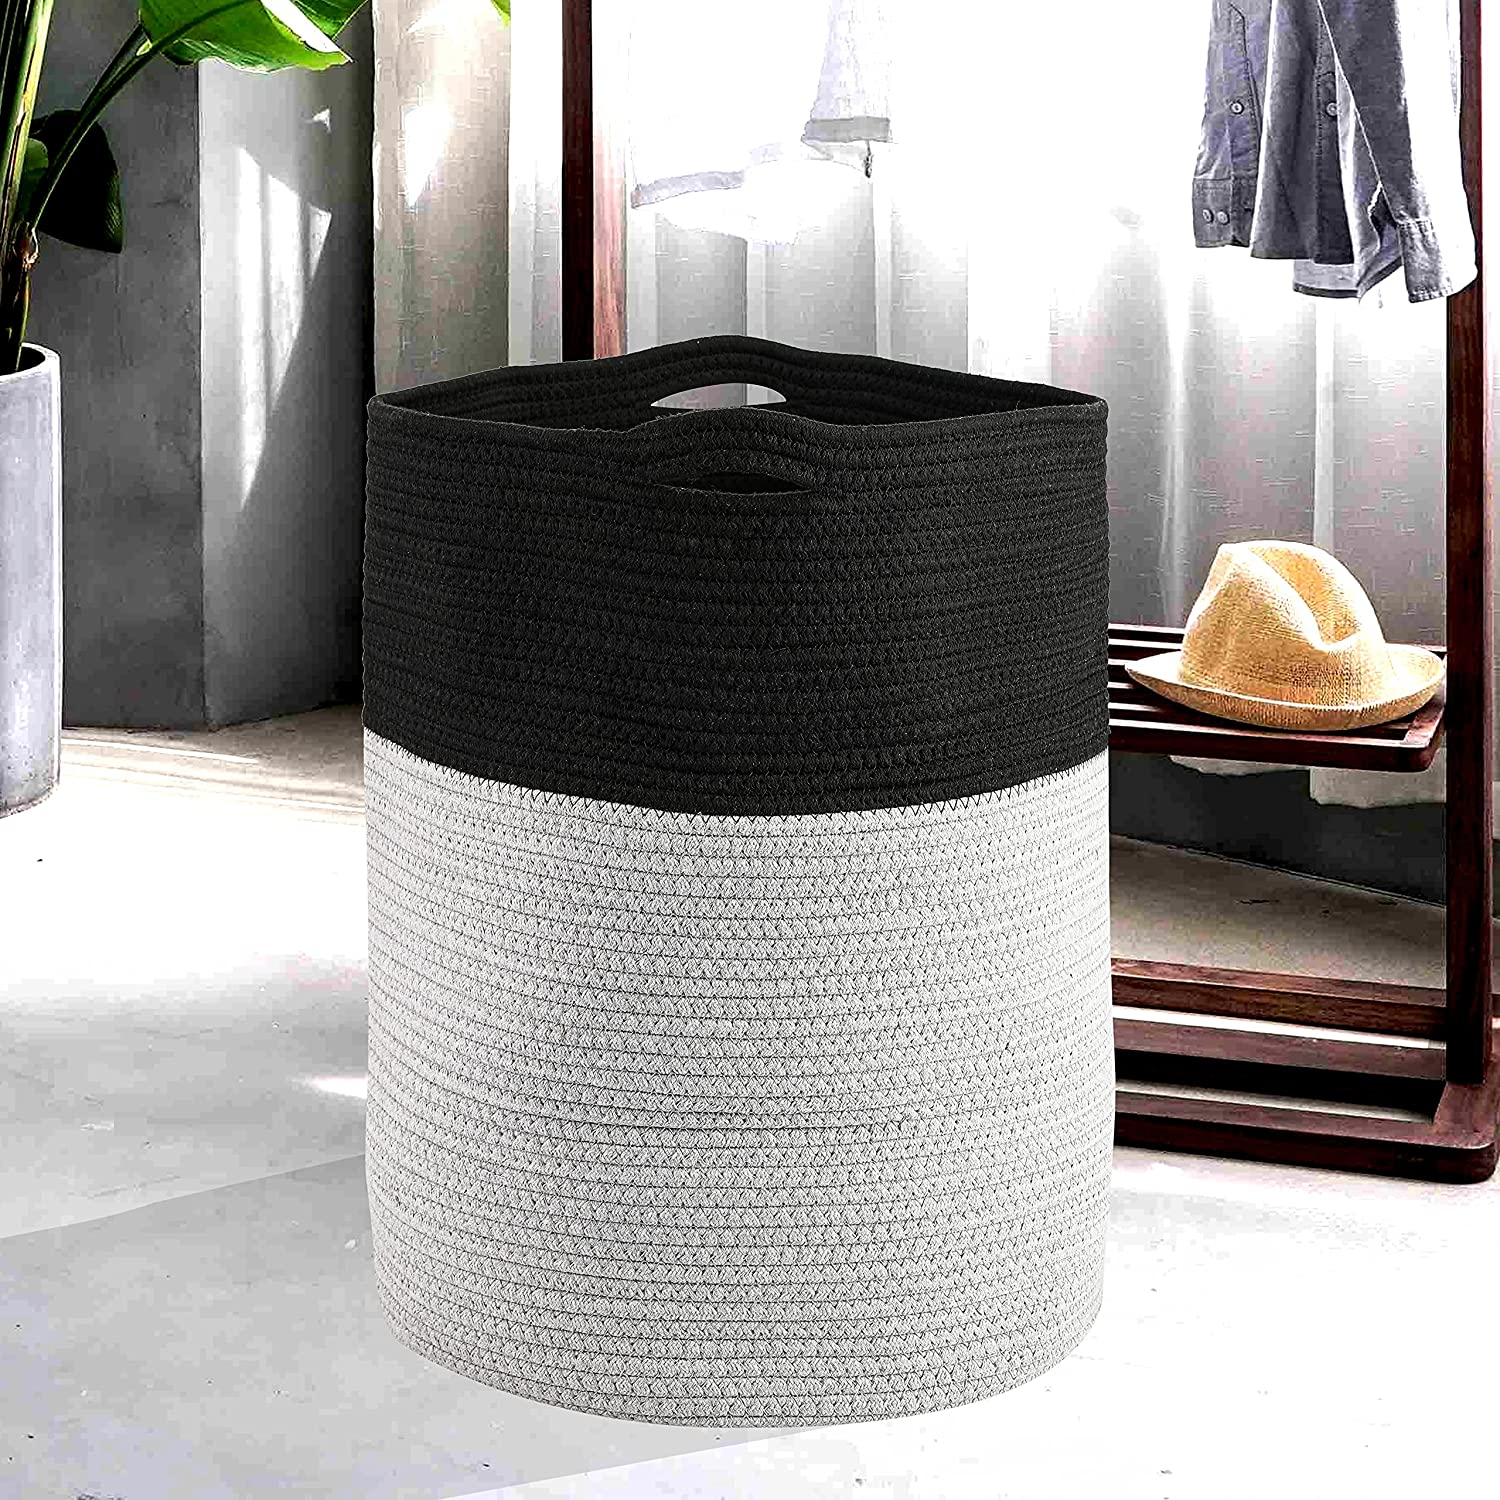 62L Laundry Hamper Large Capacity Cotton Max 74% OFF lowest price Bask Woven Rope